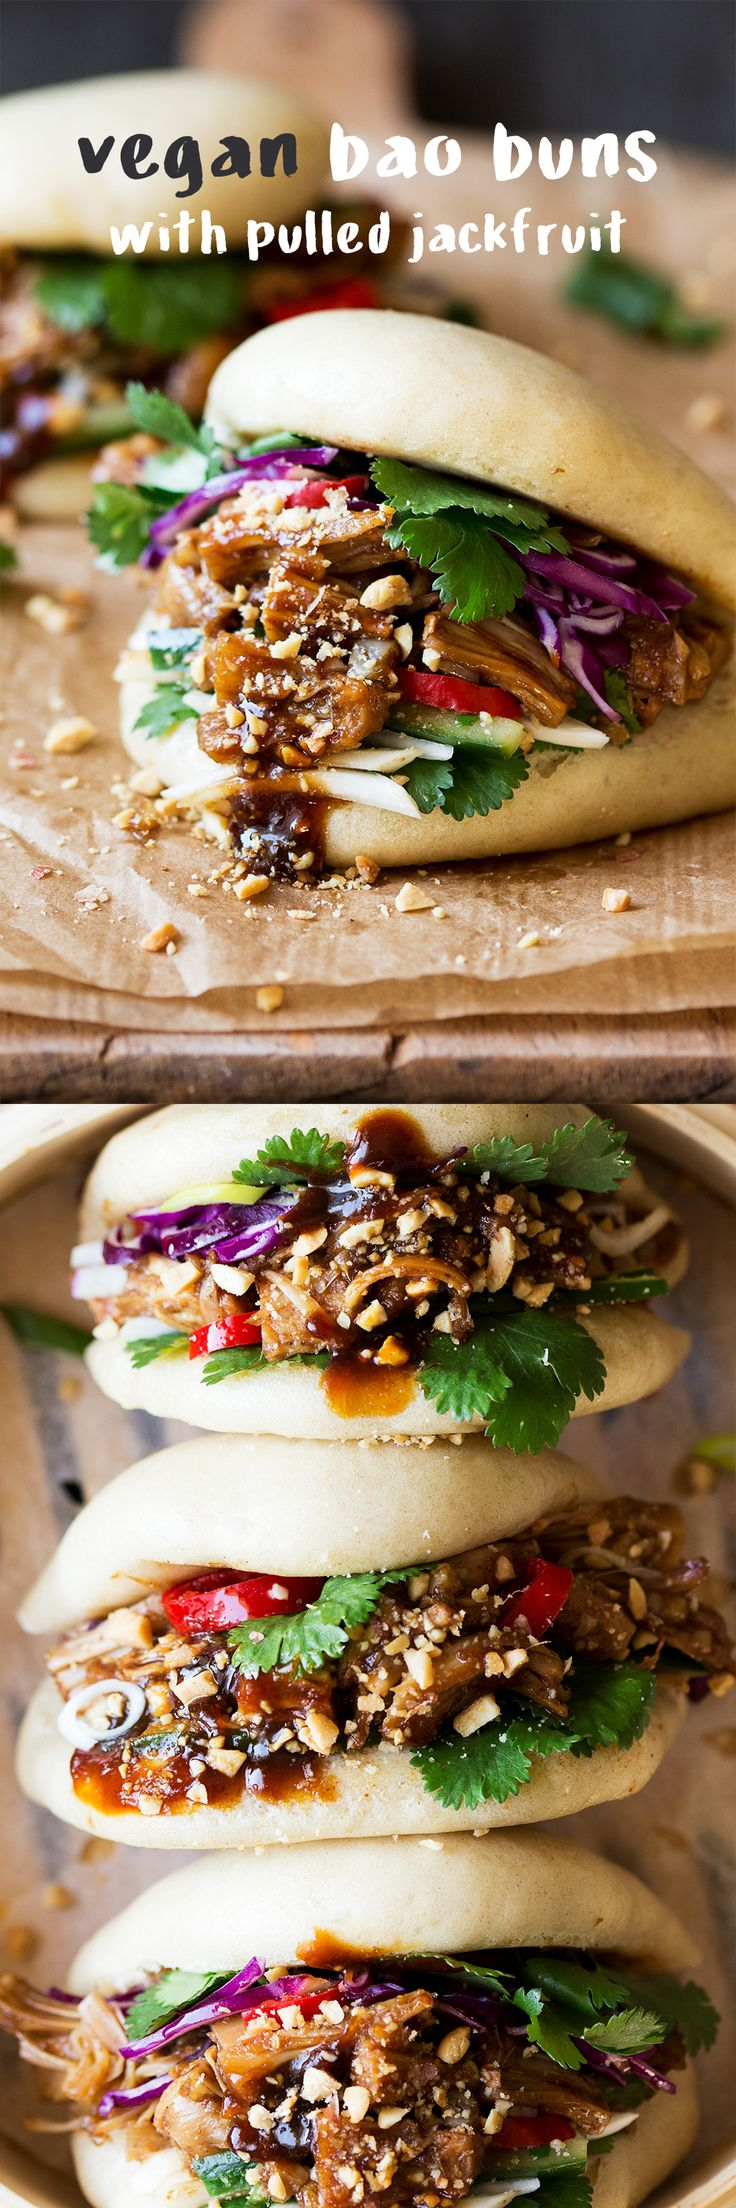 Bao Buns with Pulled Jackfruit (VEGAN)